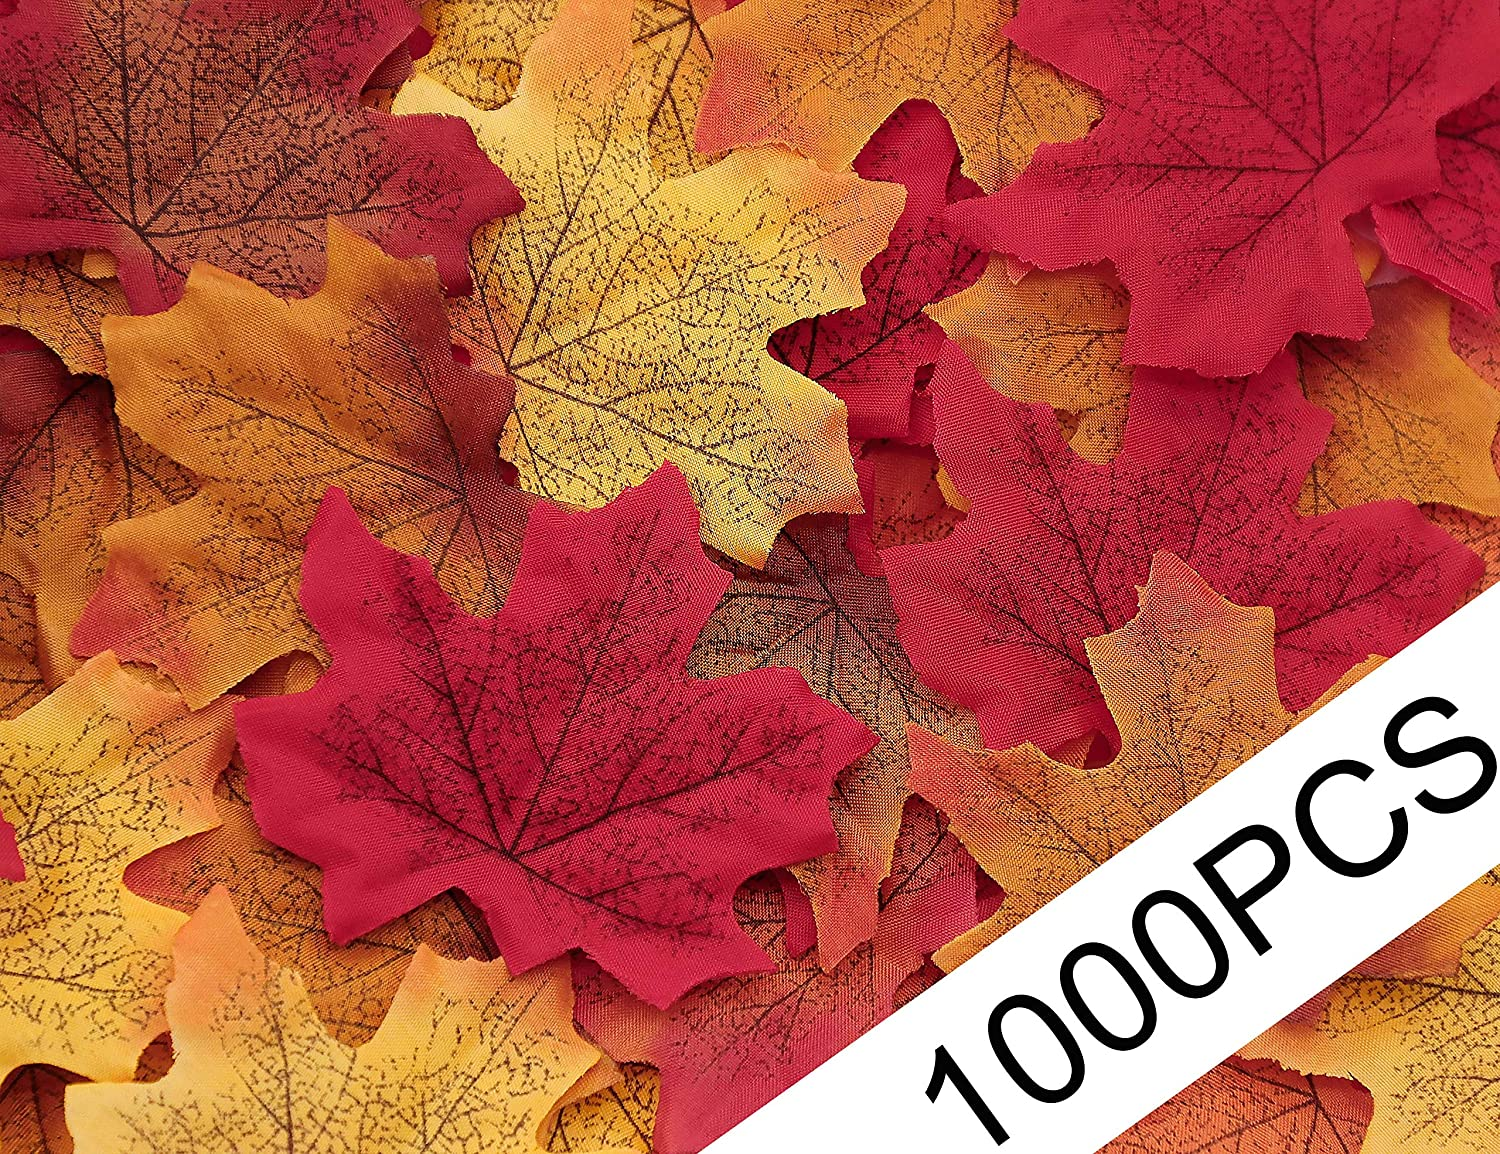 Moon Boat 1000PCS Fall Artificial Maple Leaves Thanksgiving Autumn Leaf Wedding Party Table Decor, Multicolored